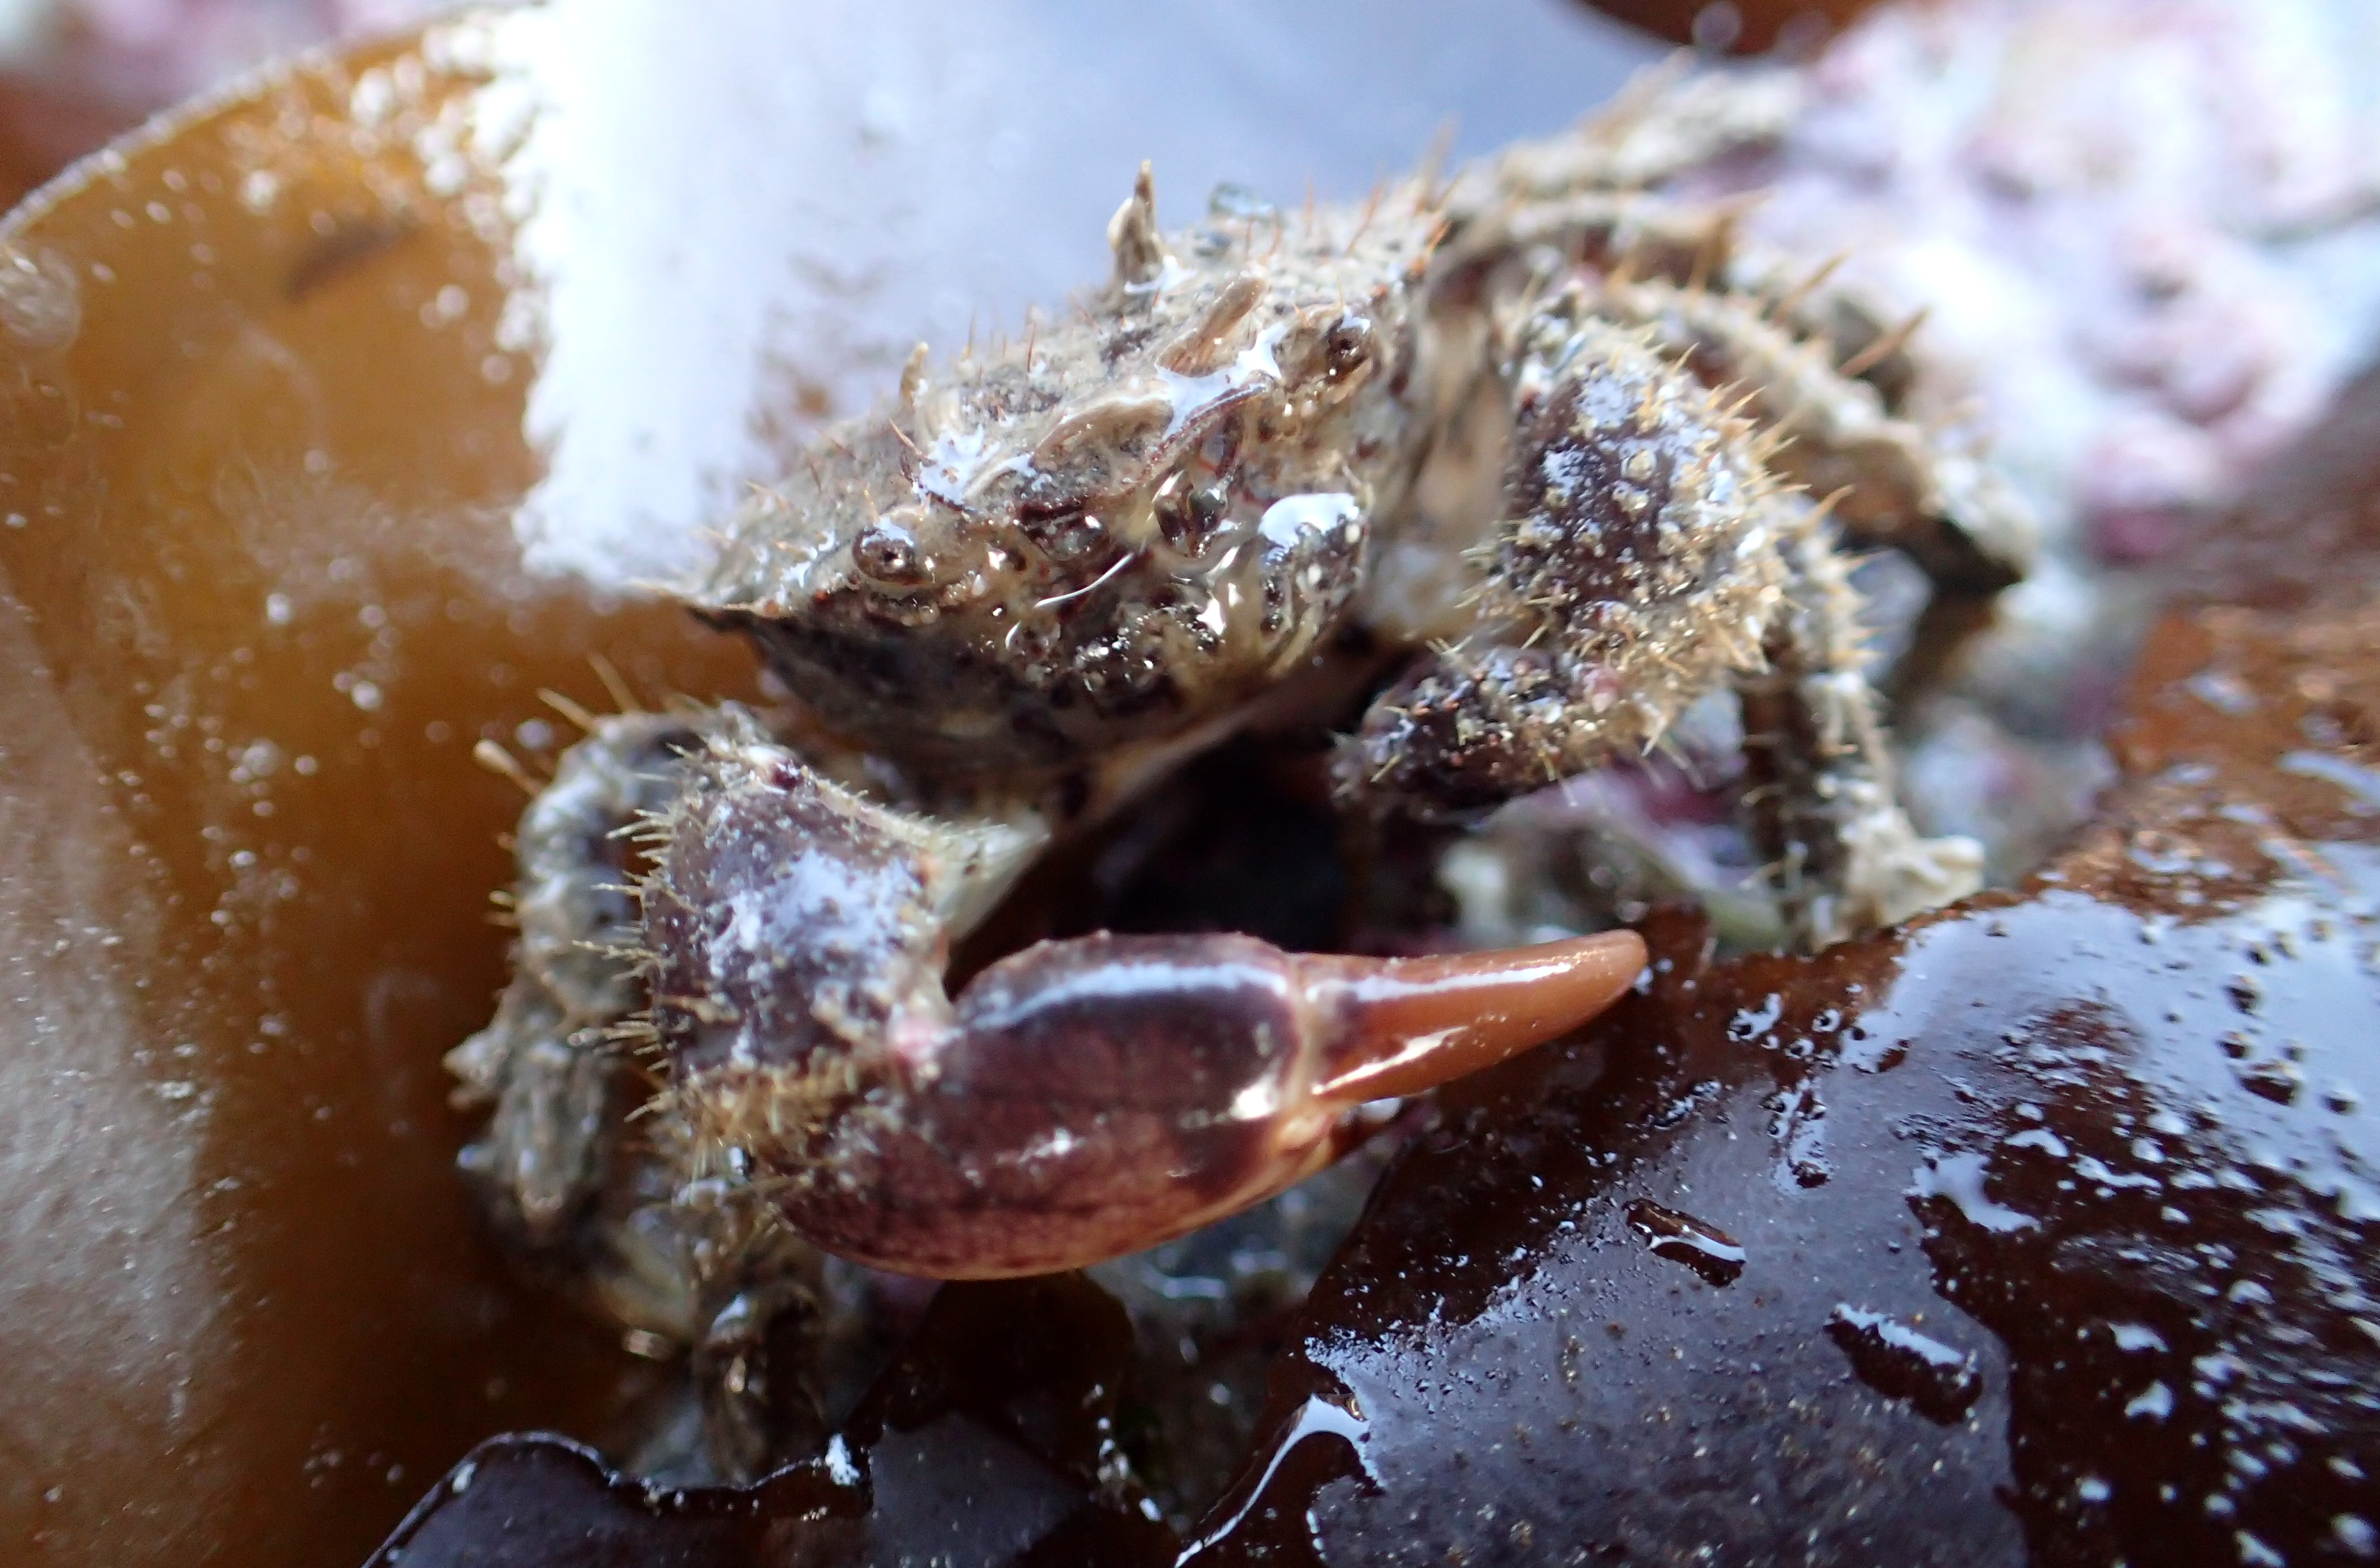 Hairy crabs are covered all over in bristles and have one claw bigger than the other.